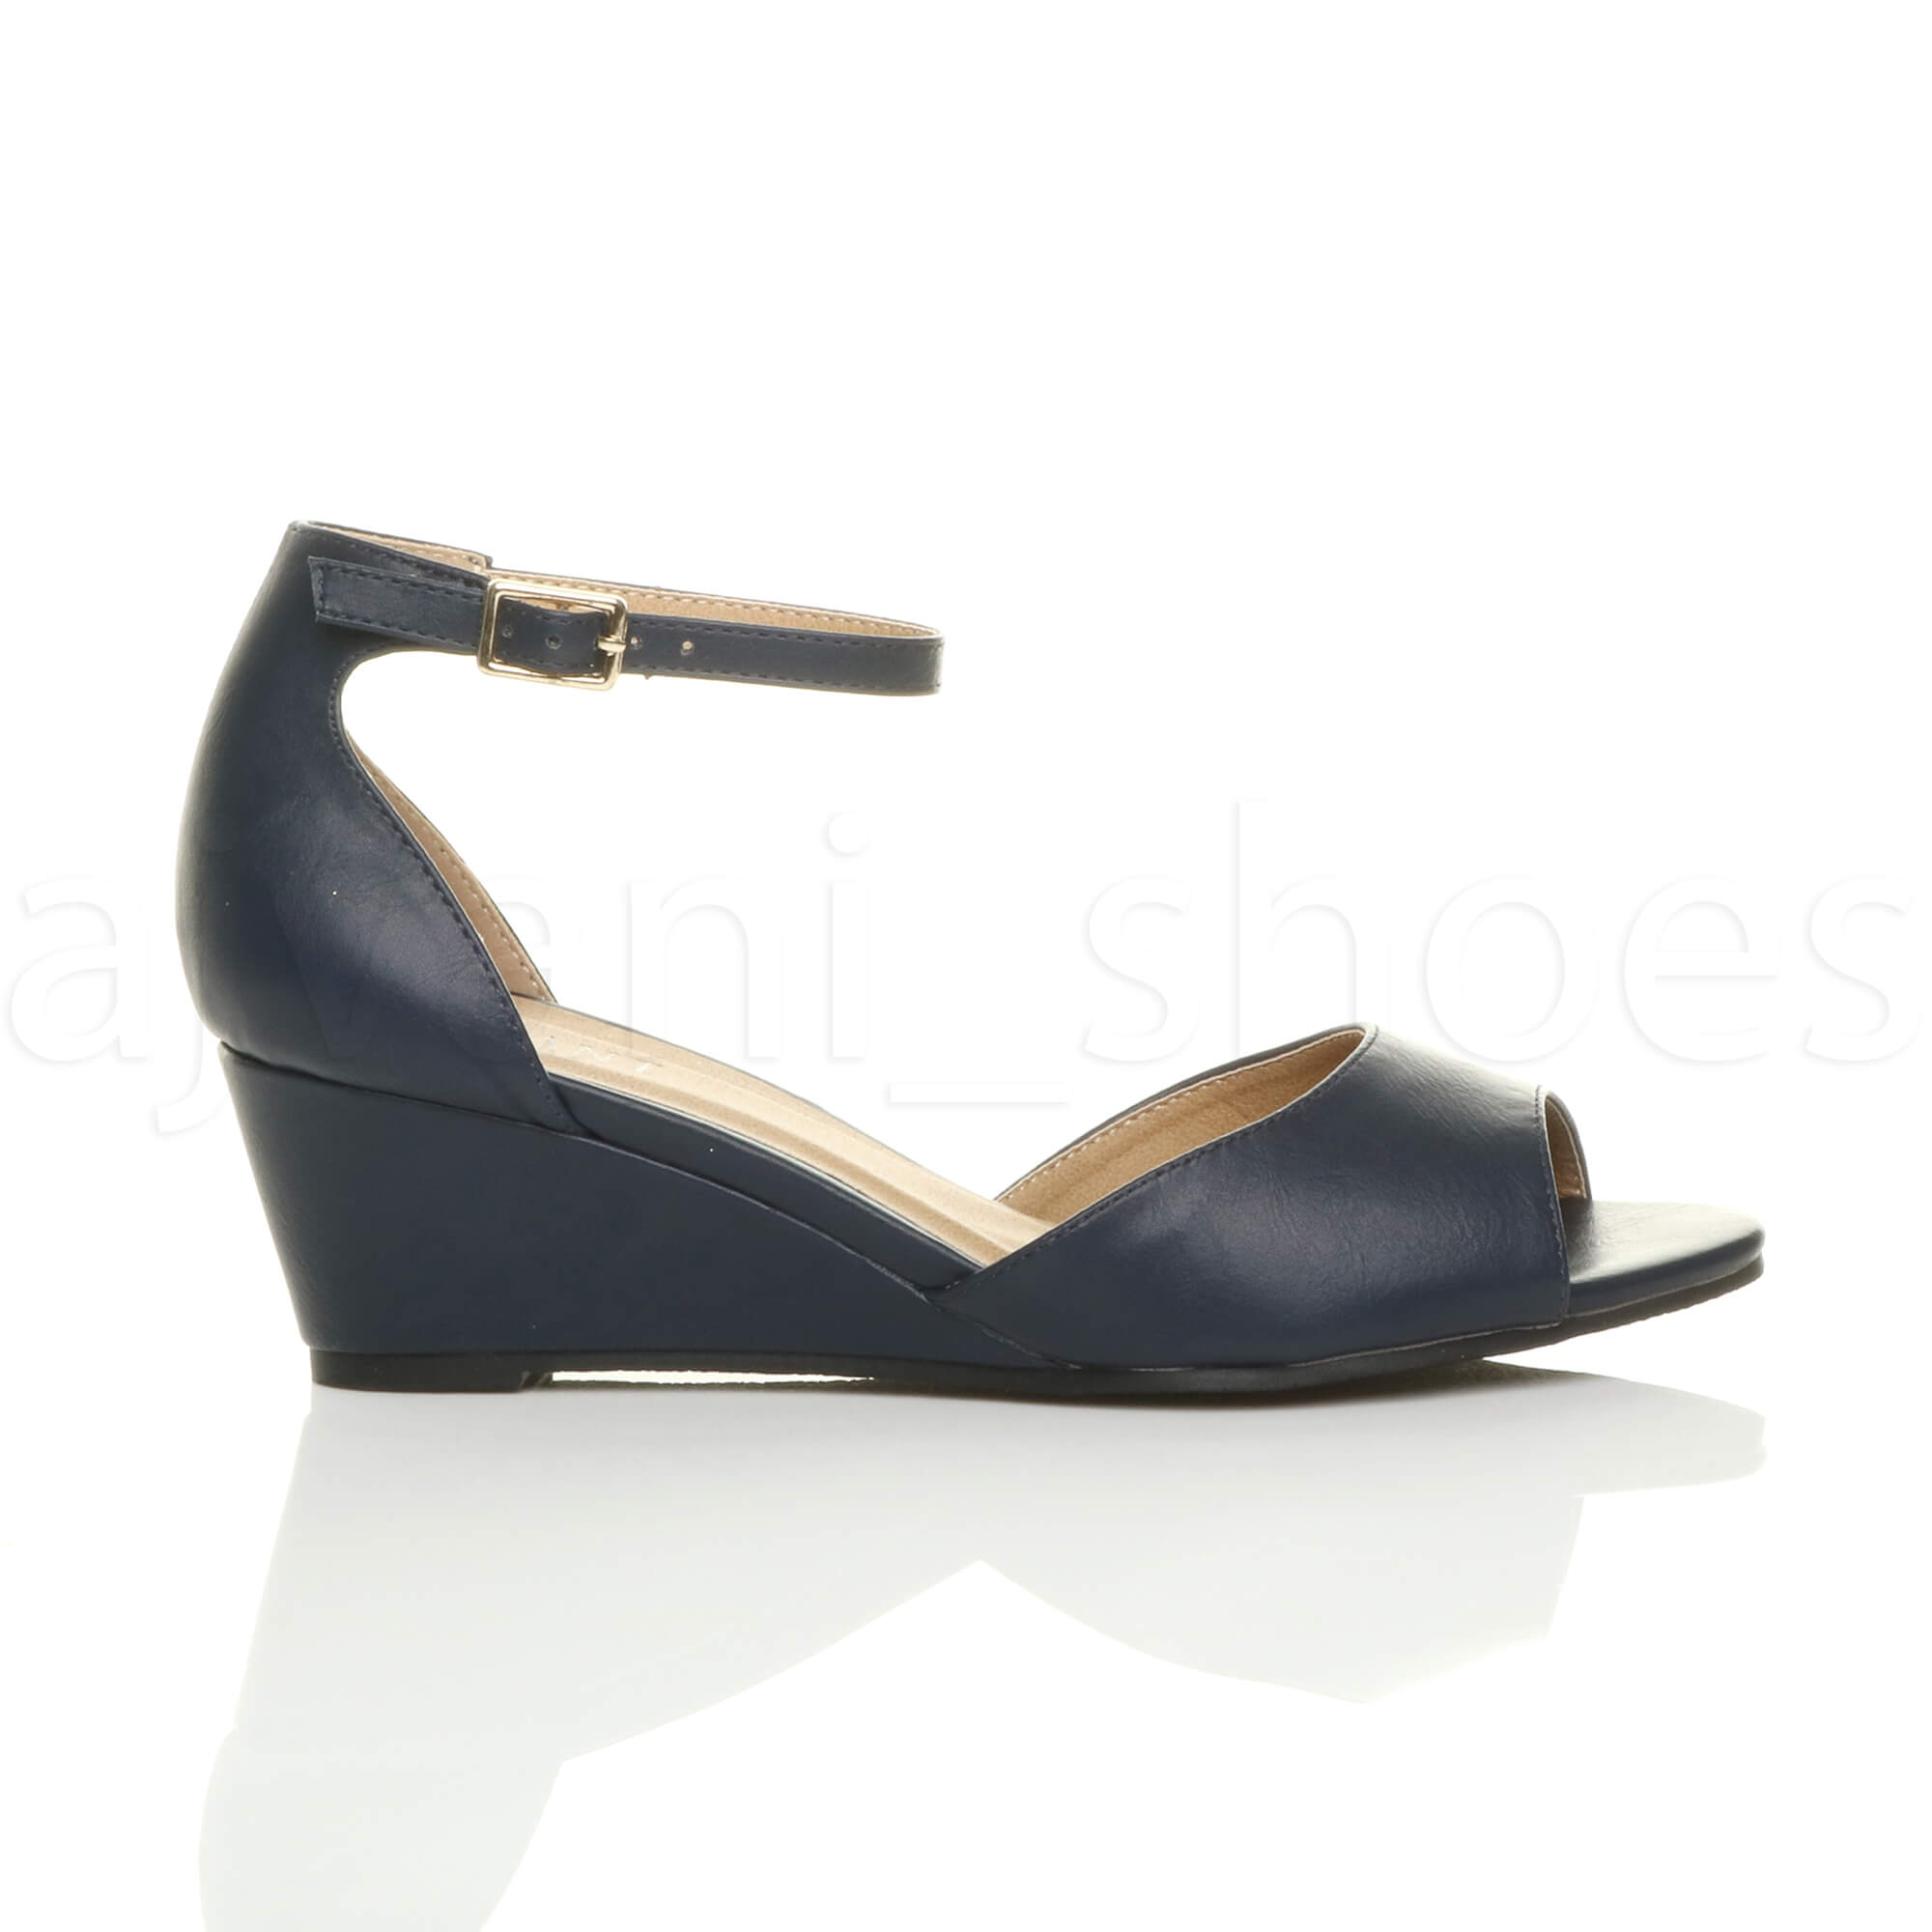 WOMENS-LADIES-LOW-MID-WEDGE-HEEL-ANKLE-STRAP-SMART-CASUAL-EVENING-SANDALS-SIZE thumbnail 83